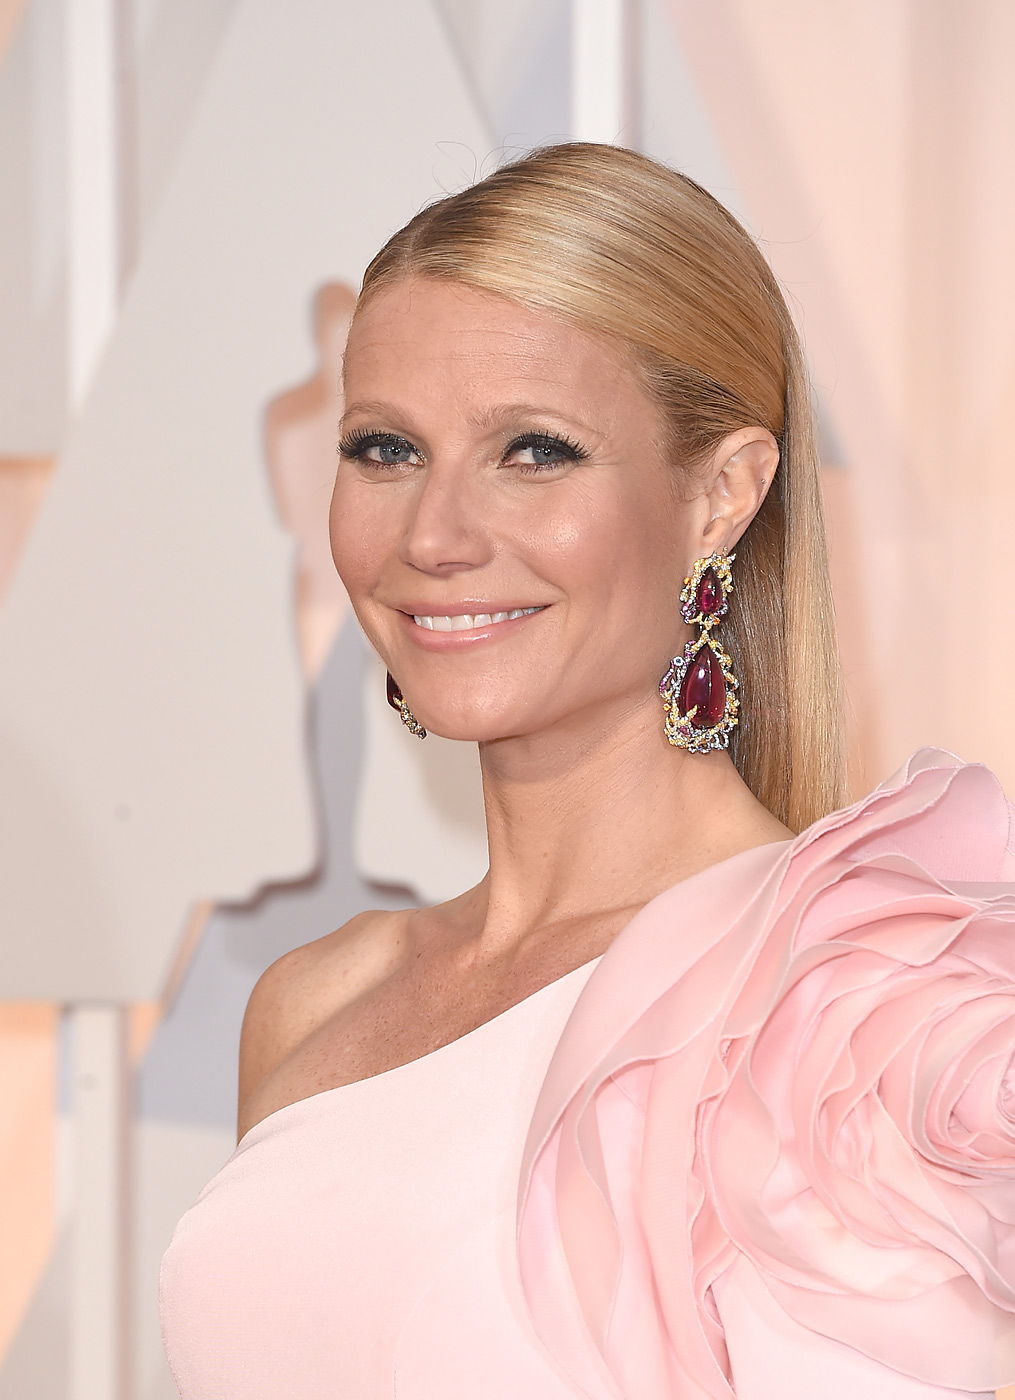 Gwyneth Paltrow attends the 87th Annual Academy Awards at Hollywood & Highland Center on Feb. 22, 2015 in Hollywood, Calif.